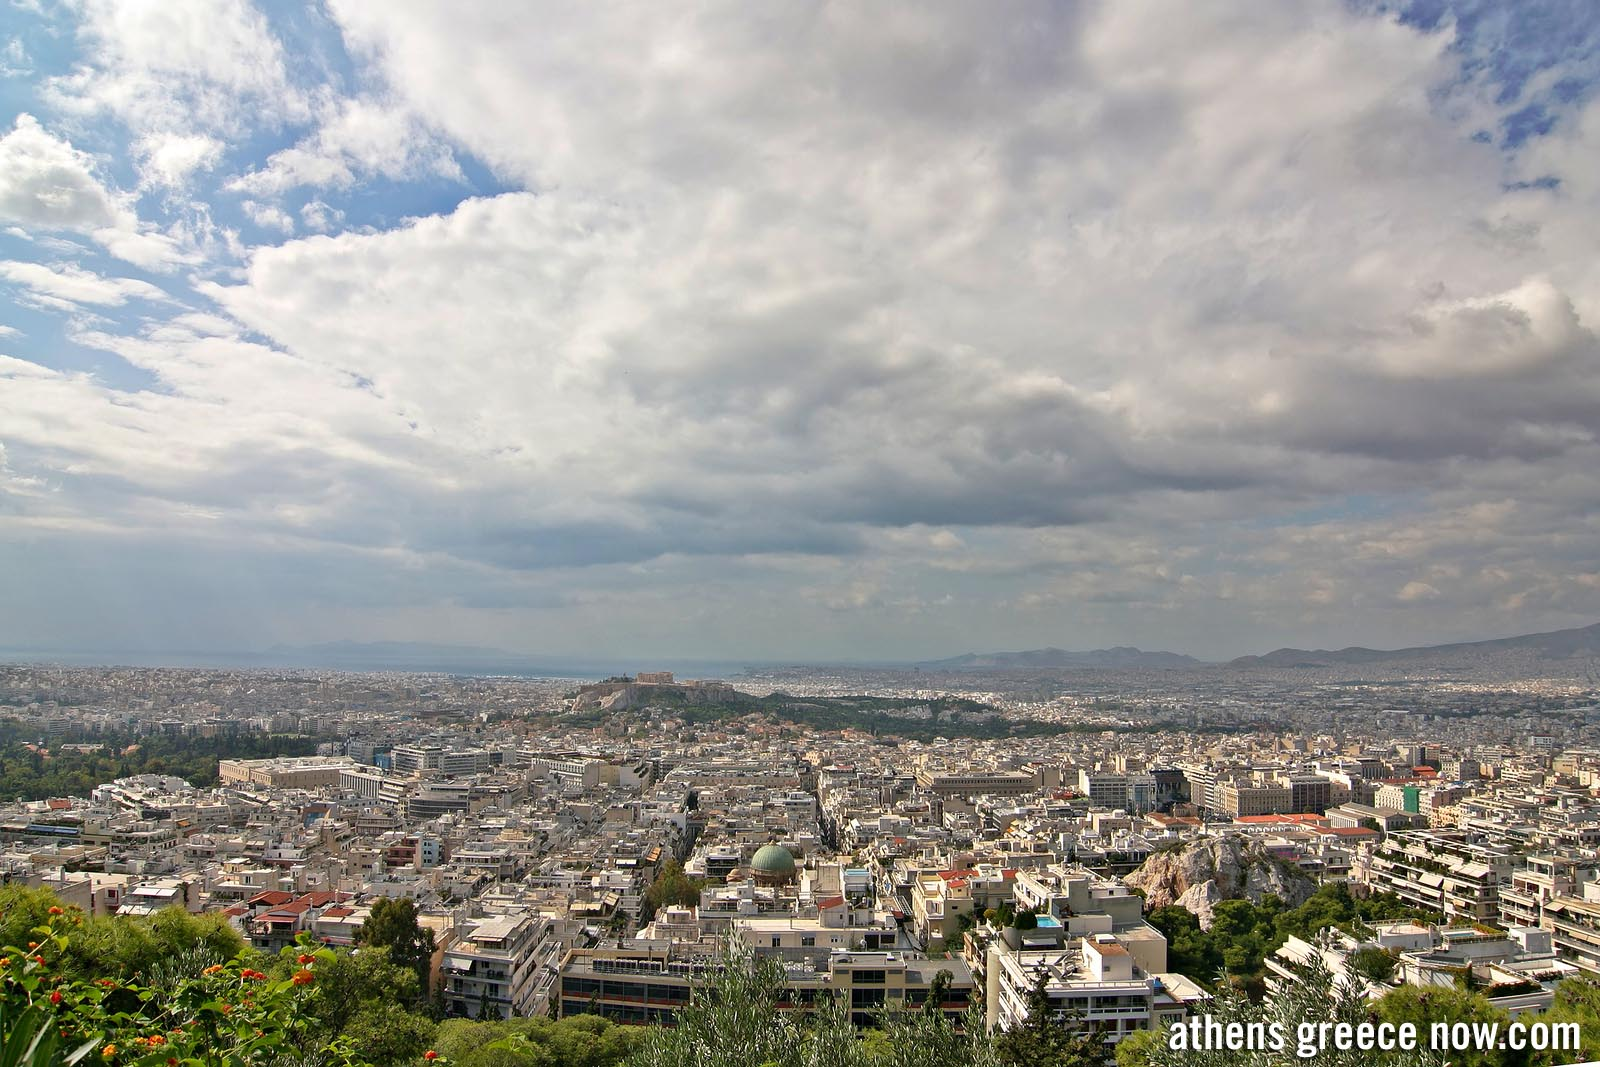 Enlarged - Athens Greece from Lycabettus Hill - Wide view